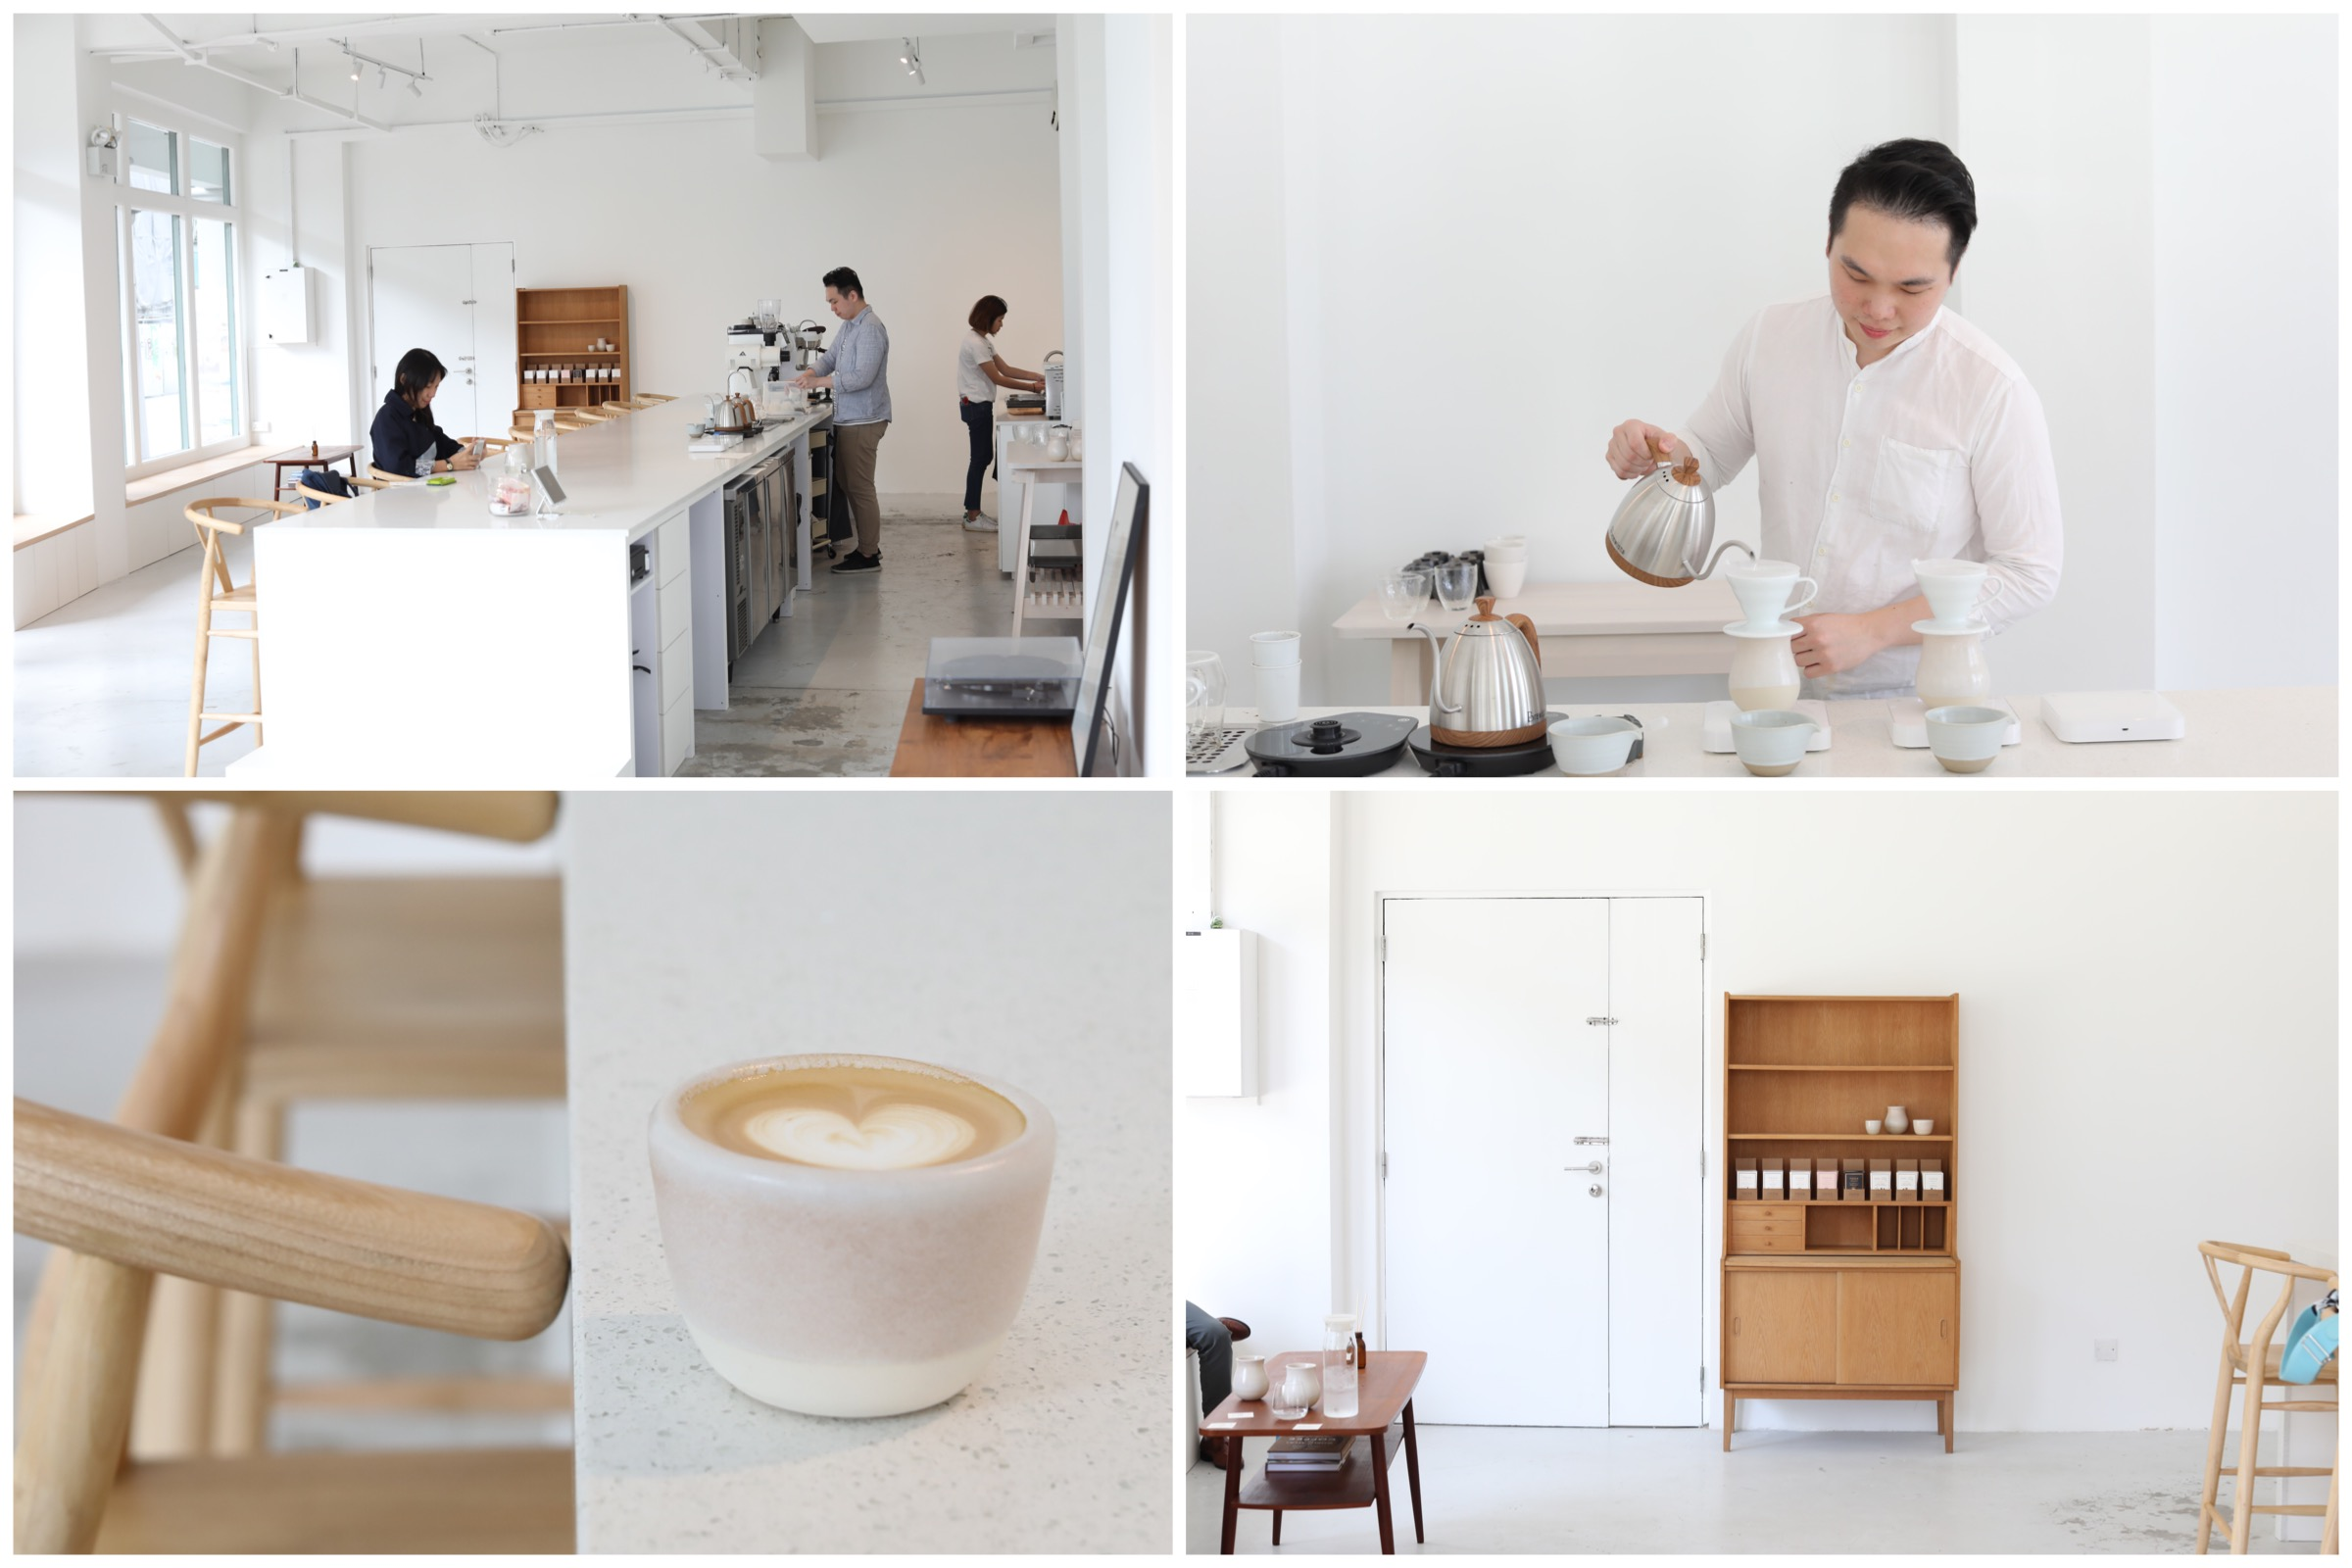 Apartment Coffee - Beautiful White Cafe That Makes You Feel Like Home, At Lavender Street